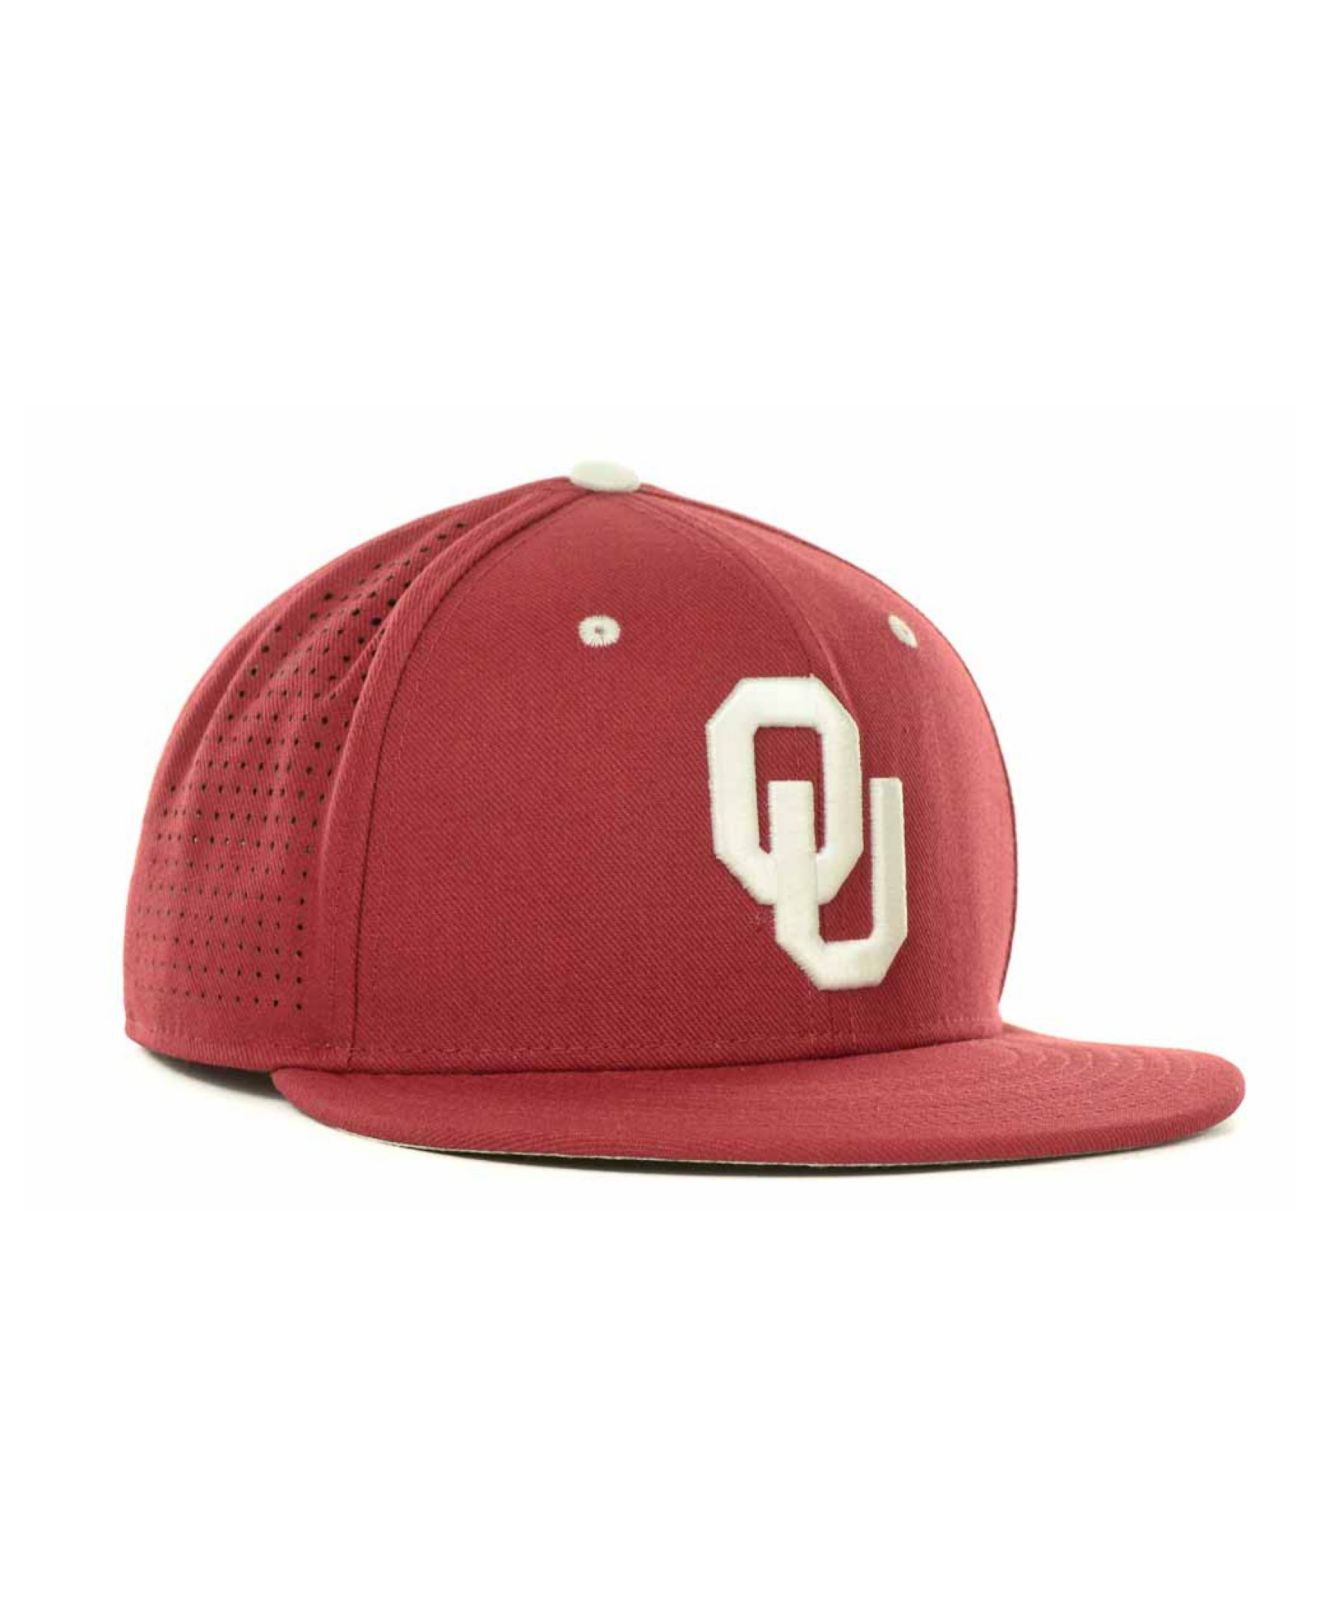 fce60908ed29ba Nike Oklahoma Sooners Ncaa Authentic Vapor Fitted Cap in Red for Men ...